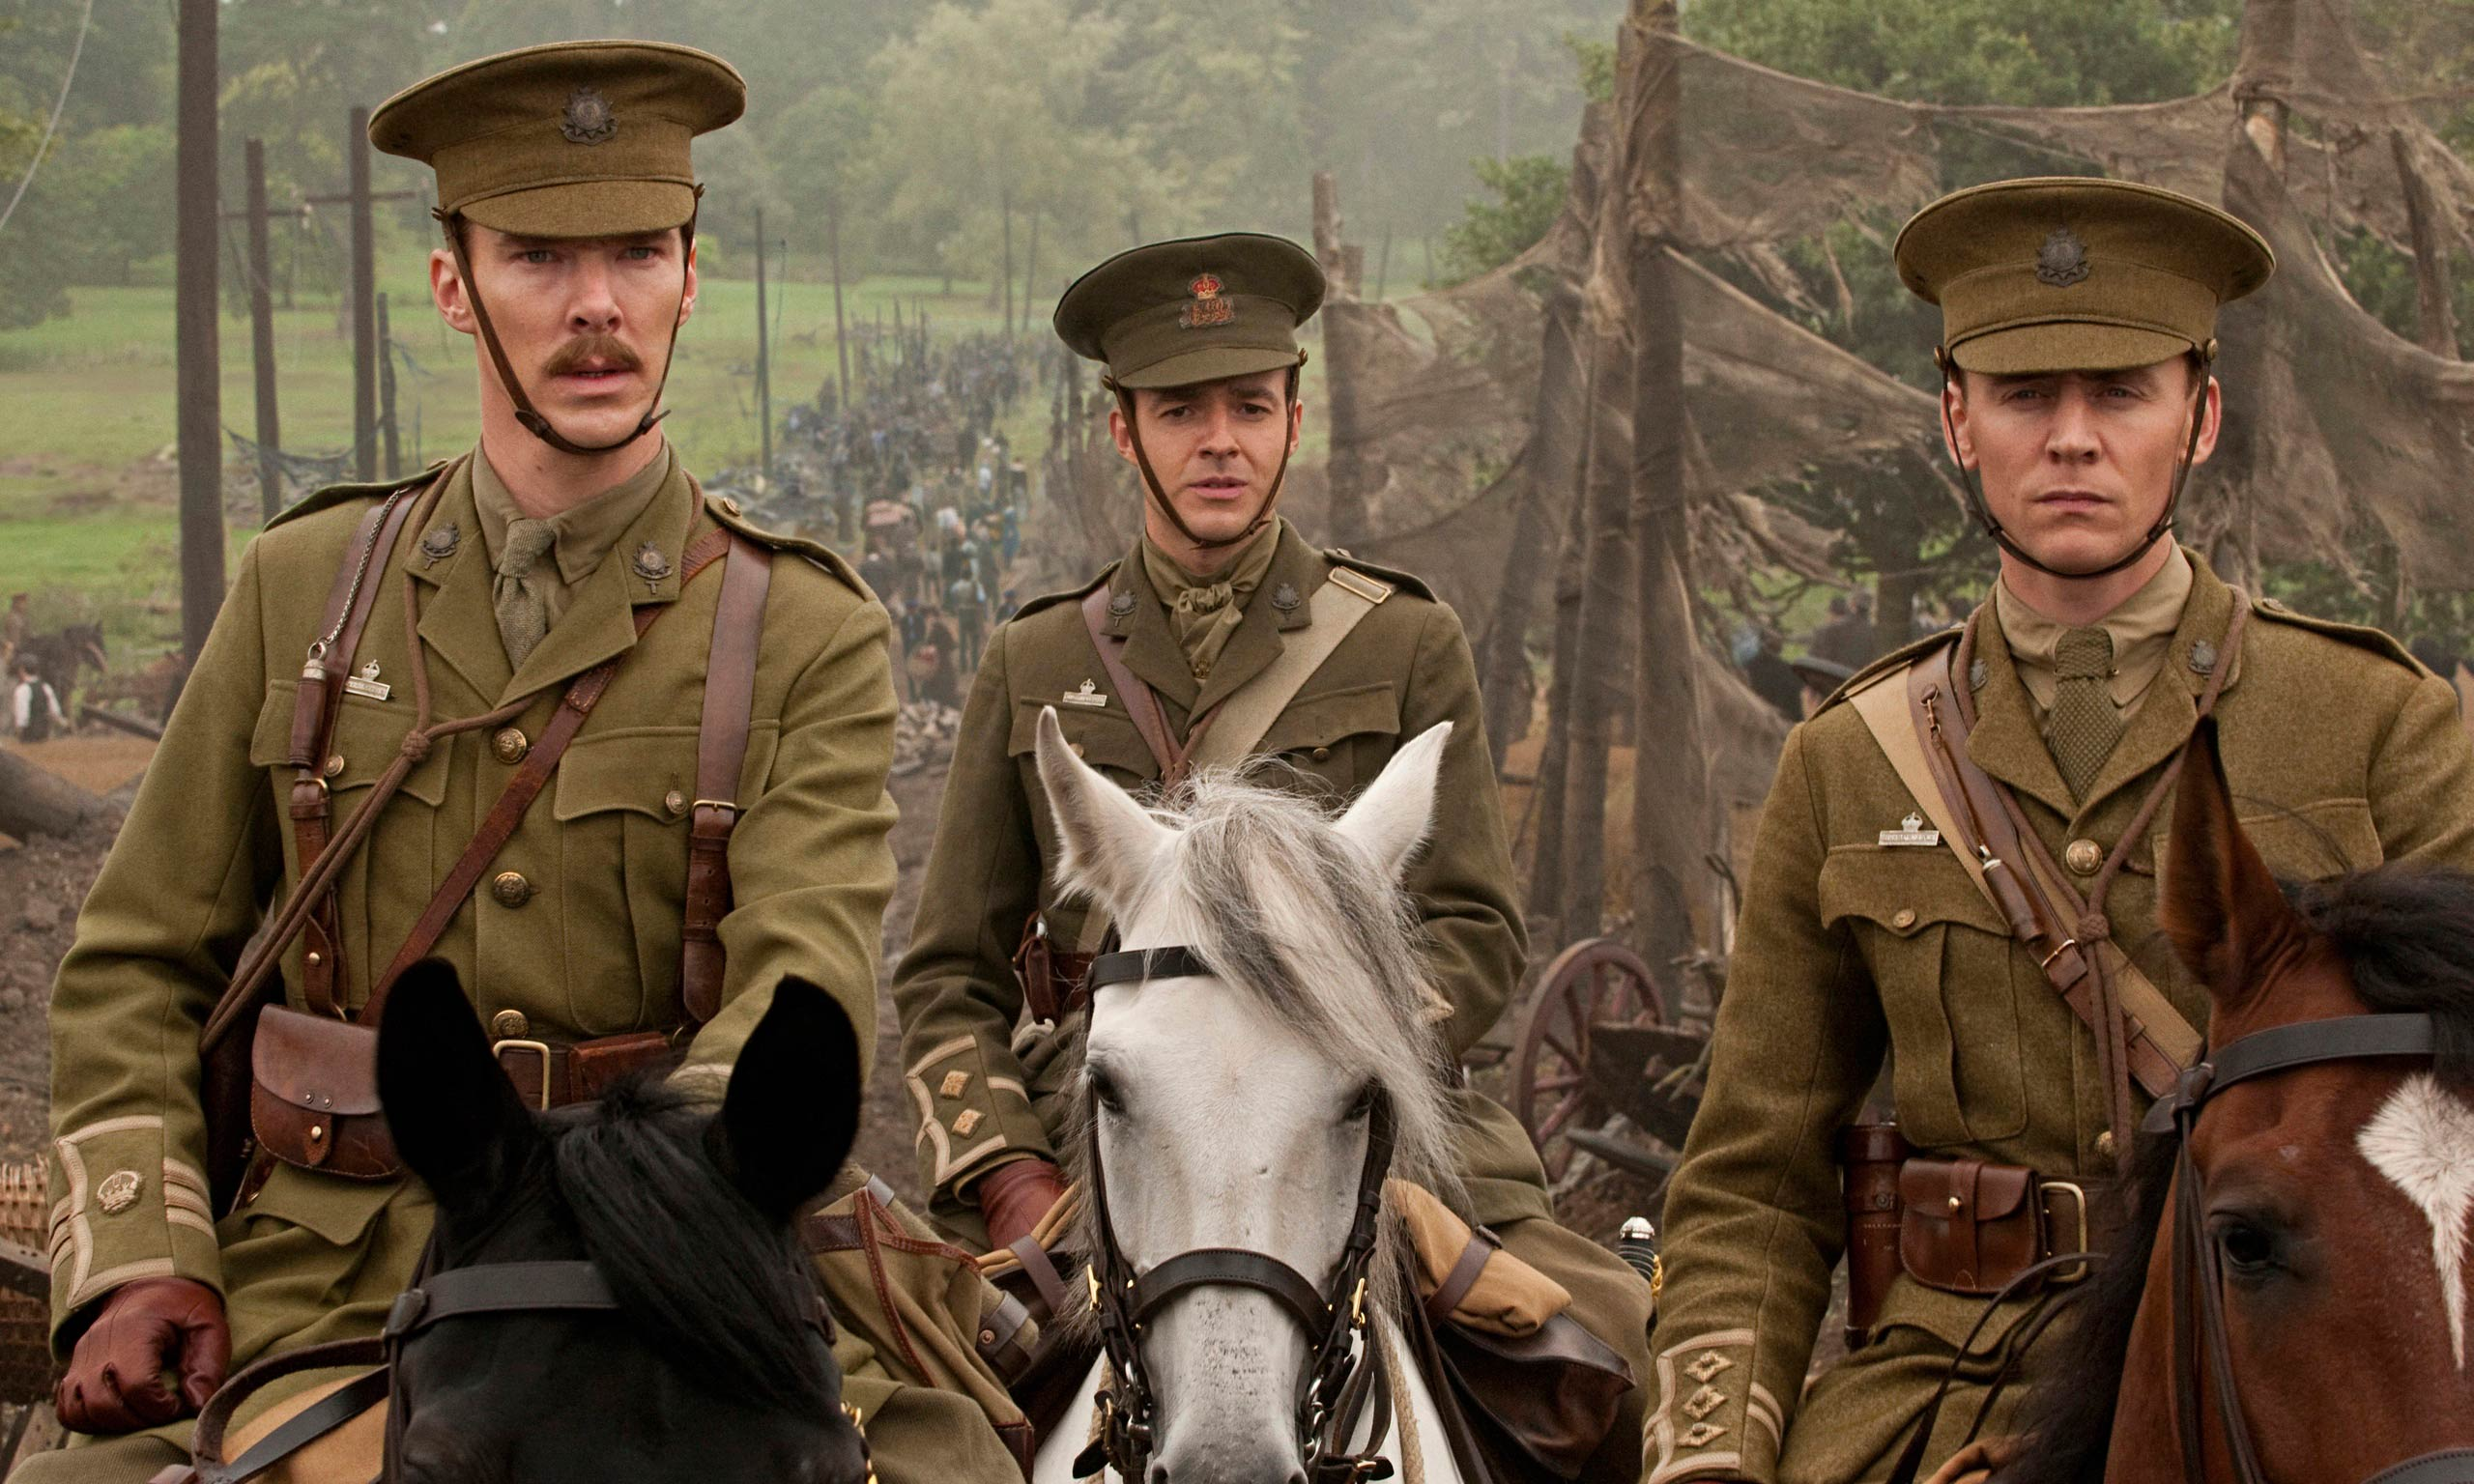 <strong>War Horse</strong> Cumberbatch (left) takes on the role of Major Jamie Stewart, the leader of a cavalry company in World War I in this 2011 war drama by Spielberg.